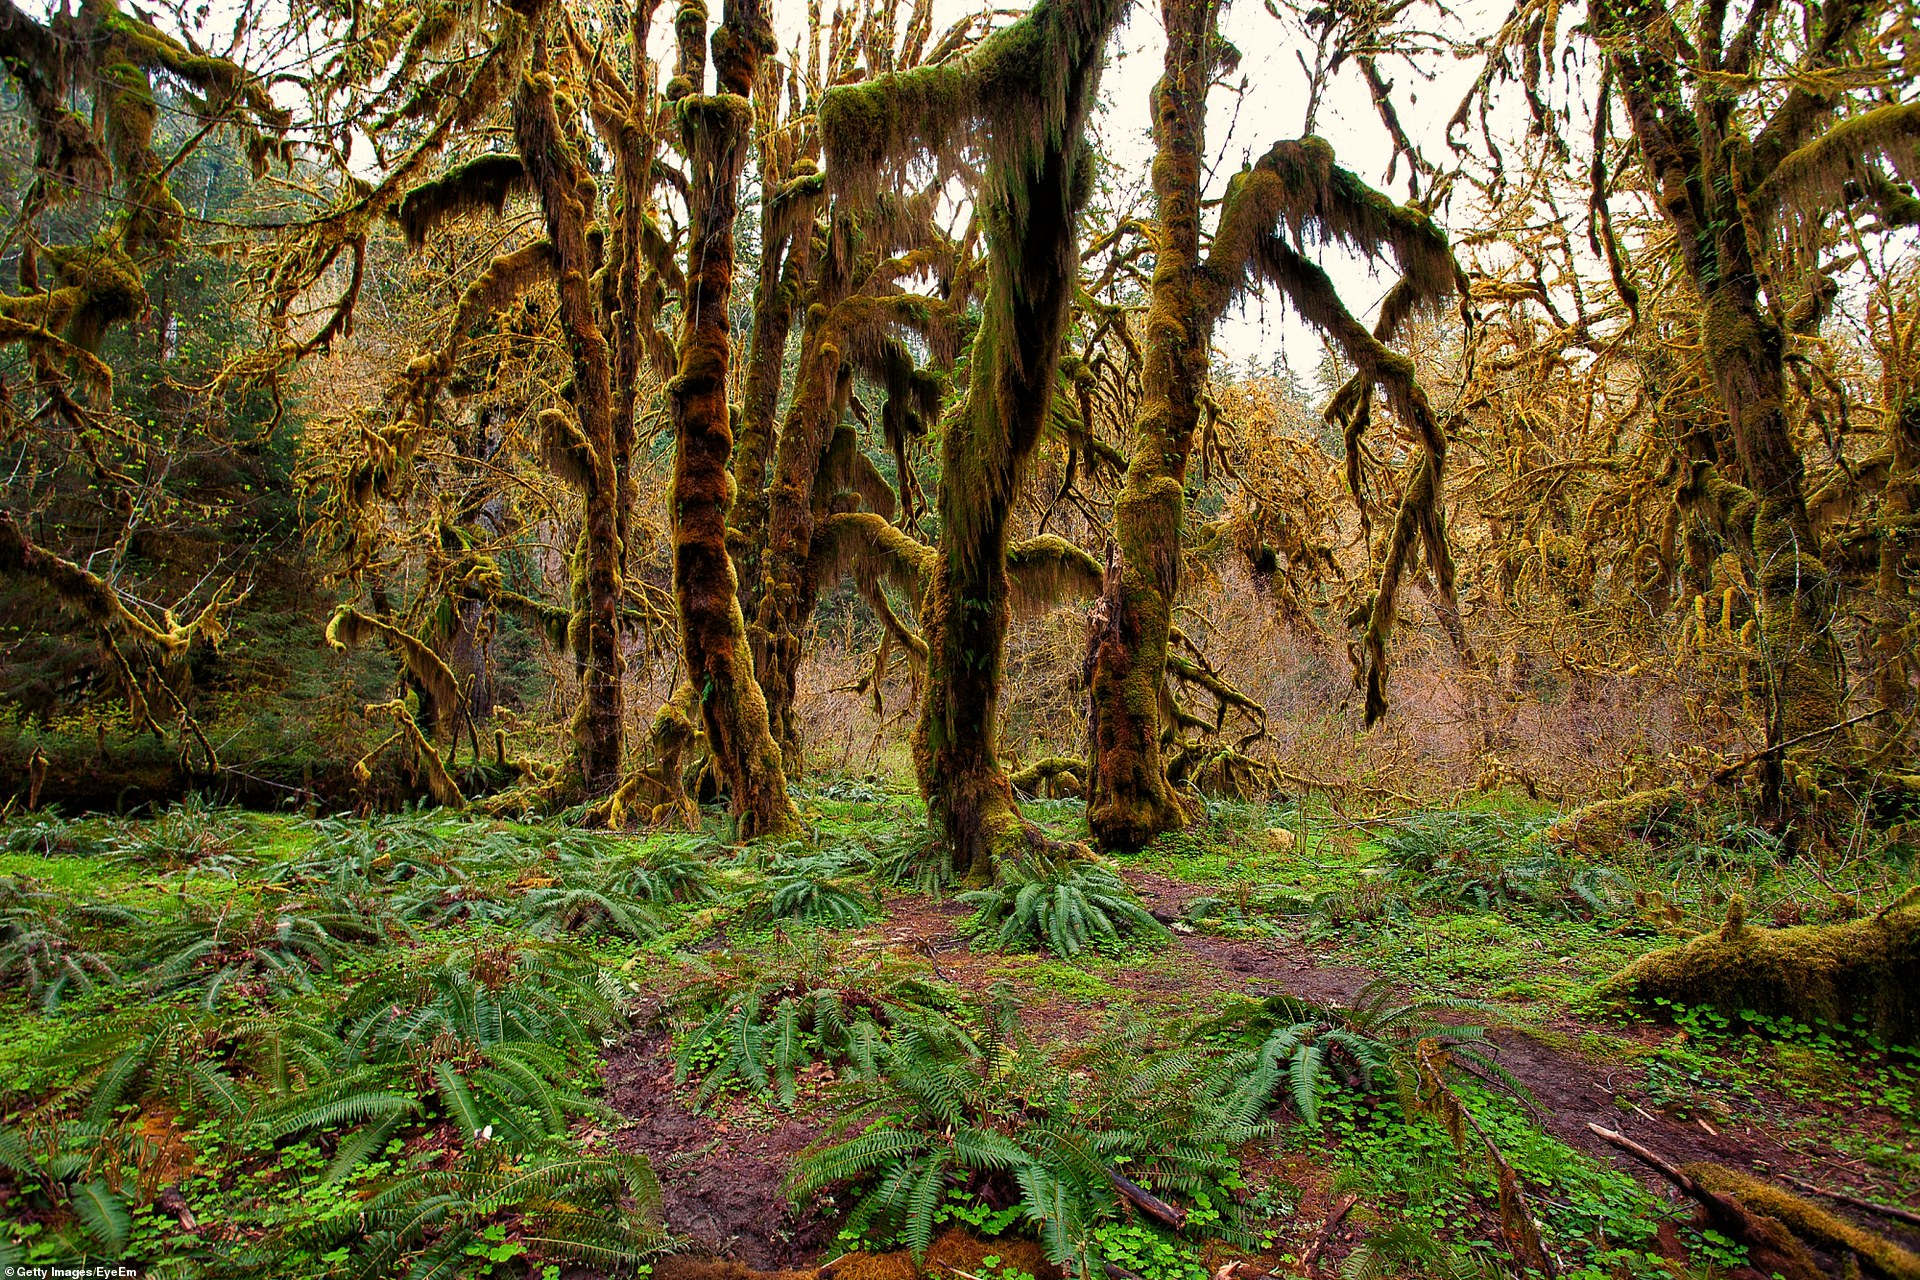 hoh_rainforest_on_the_olympic_peninsula.jpg